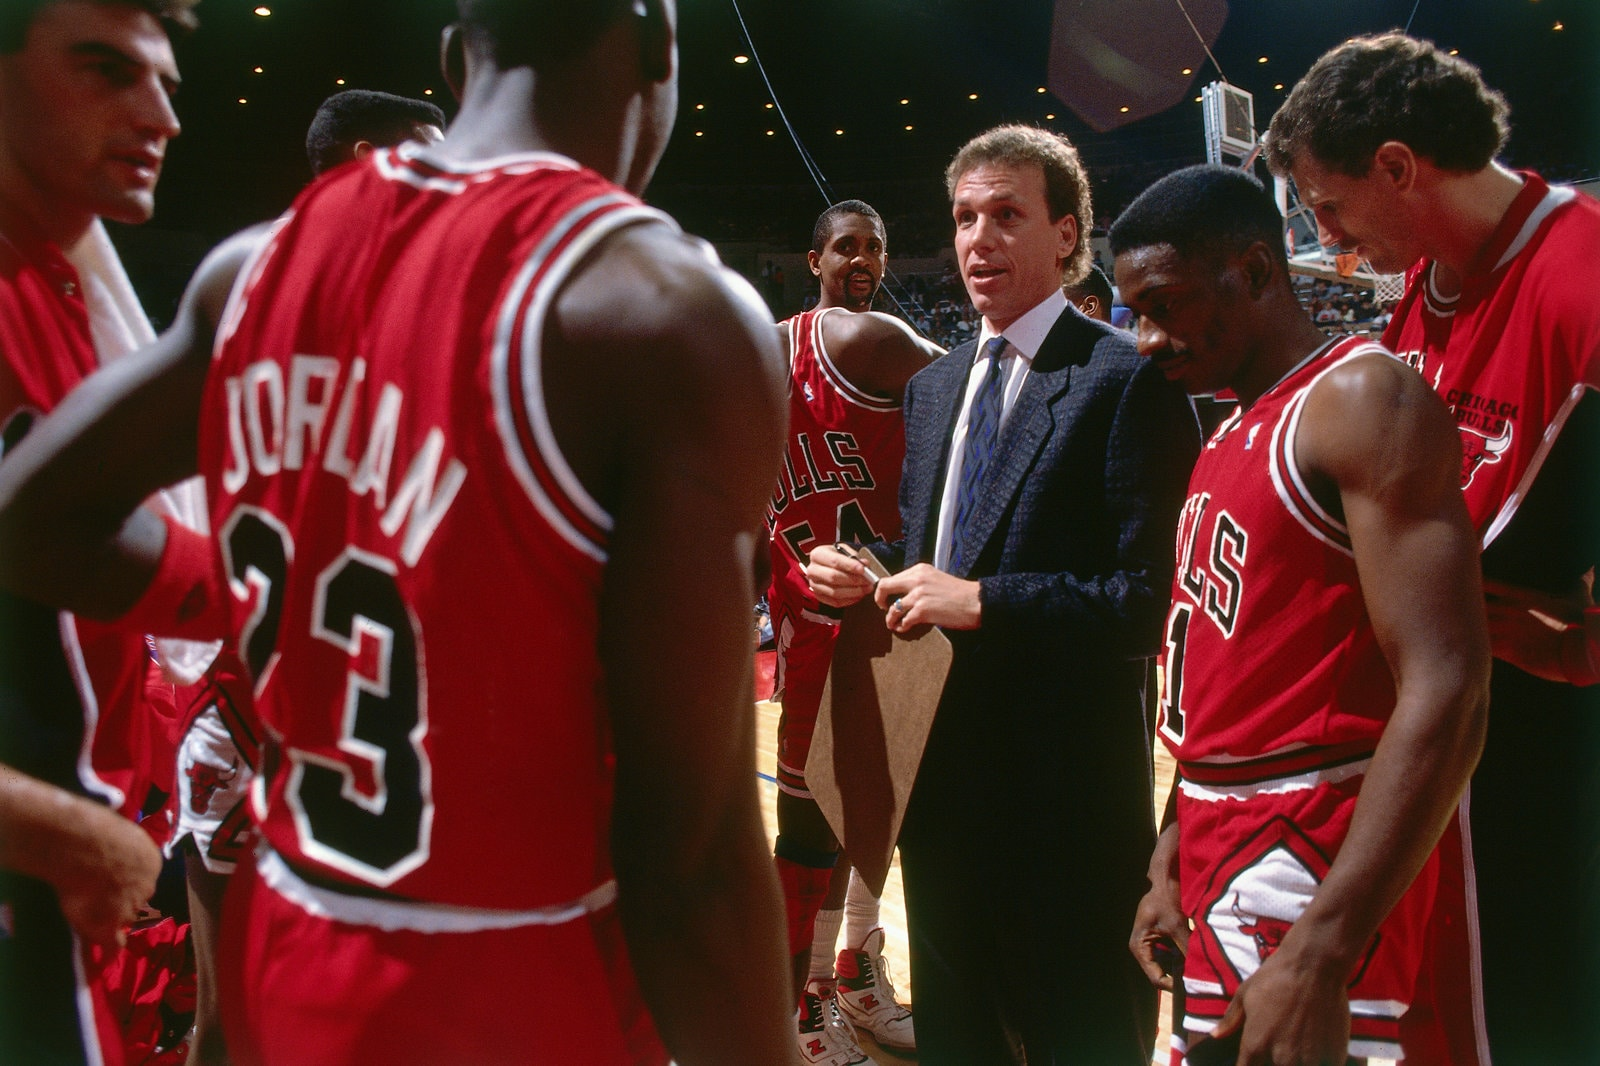 Head coach Doug Collins of the Chicago Bulls talks to his team during a game played circa 1988 at the Great Western Forum in Inglewood, California.